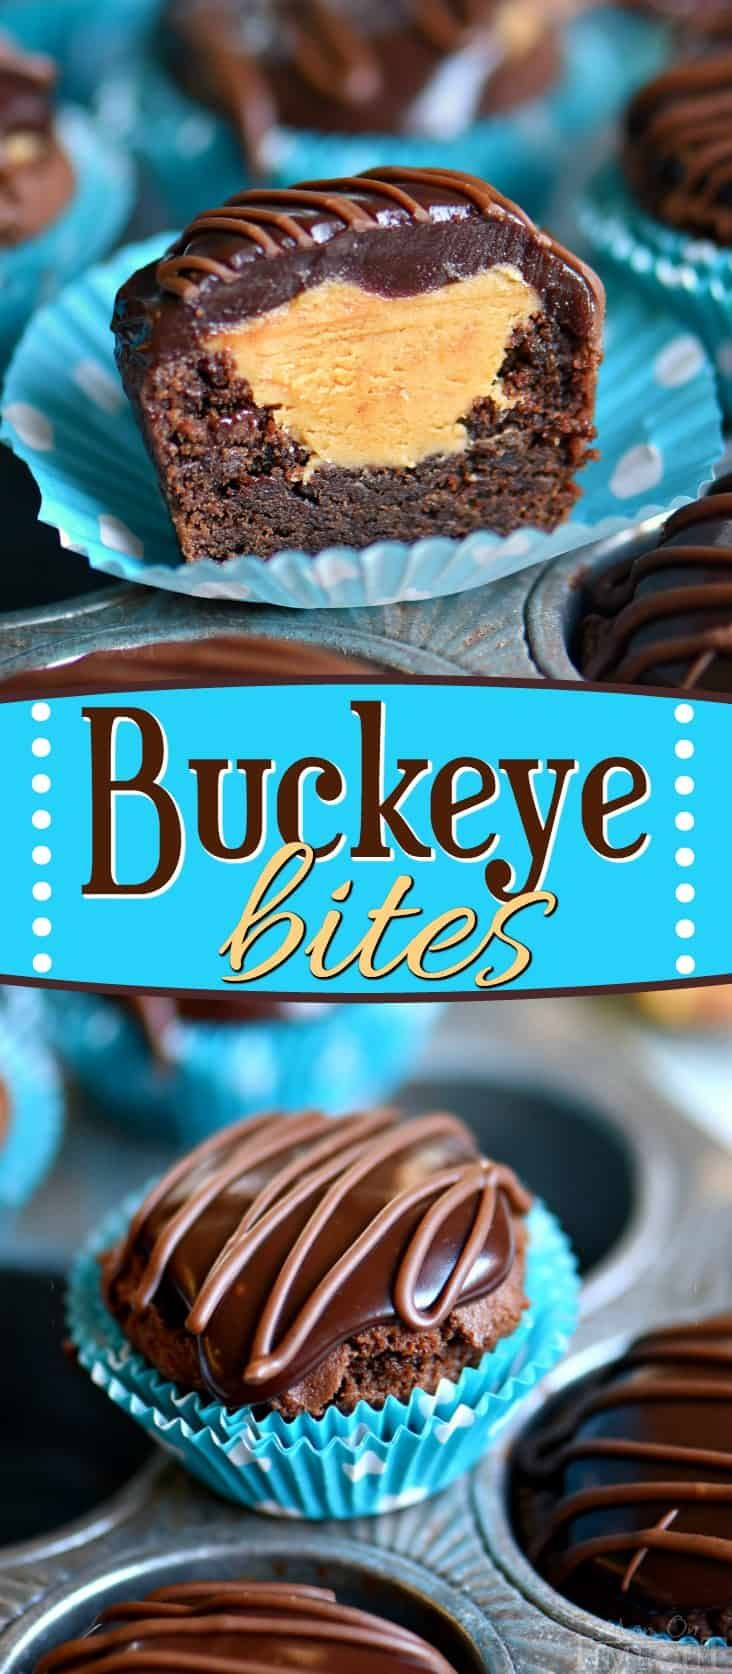 These Buckeye Bites are perfect for a crowd! Sweet chocolate cookie cups filled with a creamy peanut butter mixture and topped with decadent chocolate ganache - so good you guys! Wonderfully easy to make and and even better to eat. Serve with milk! // Mom On Timeout